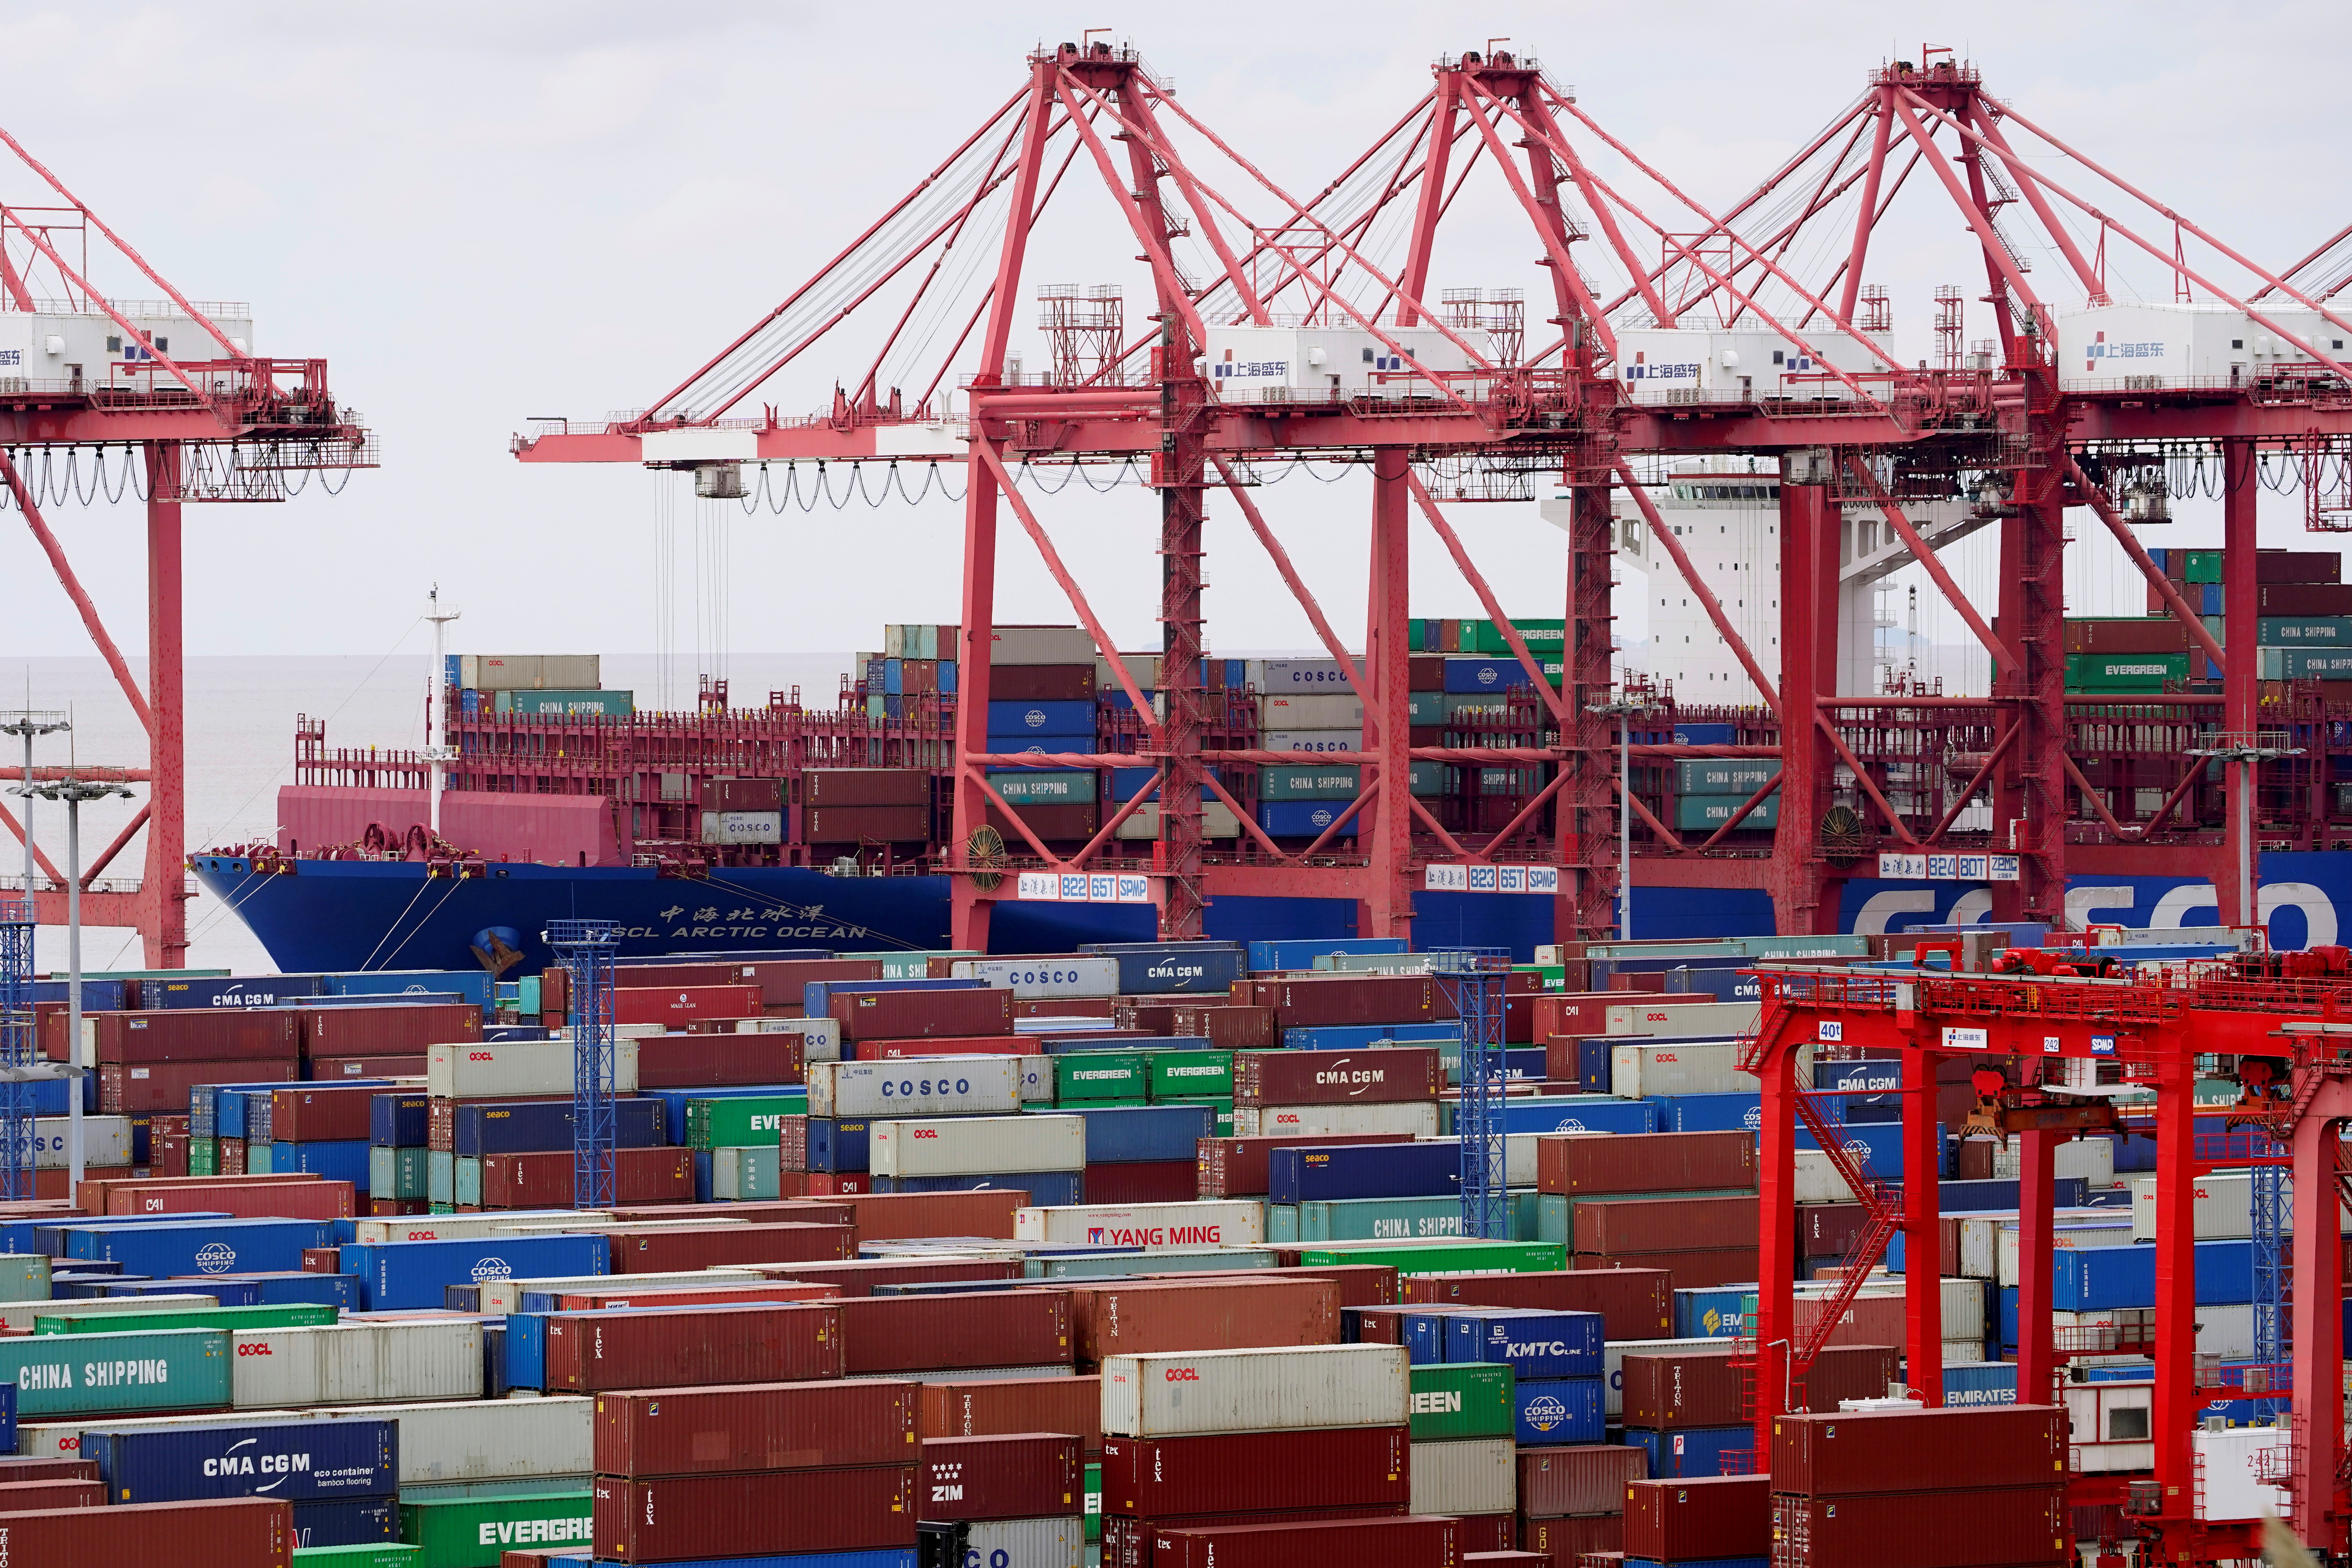 Containers are seen at the Yangshan Deep Water Port in Shanghai, China, as the coronavirus disease (COVID-19) outbreak continues, October 19, 2020. REUTERS/Aly Song/File Photo